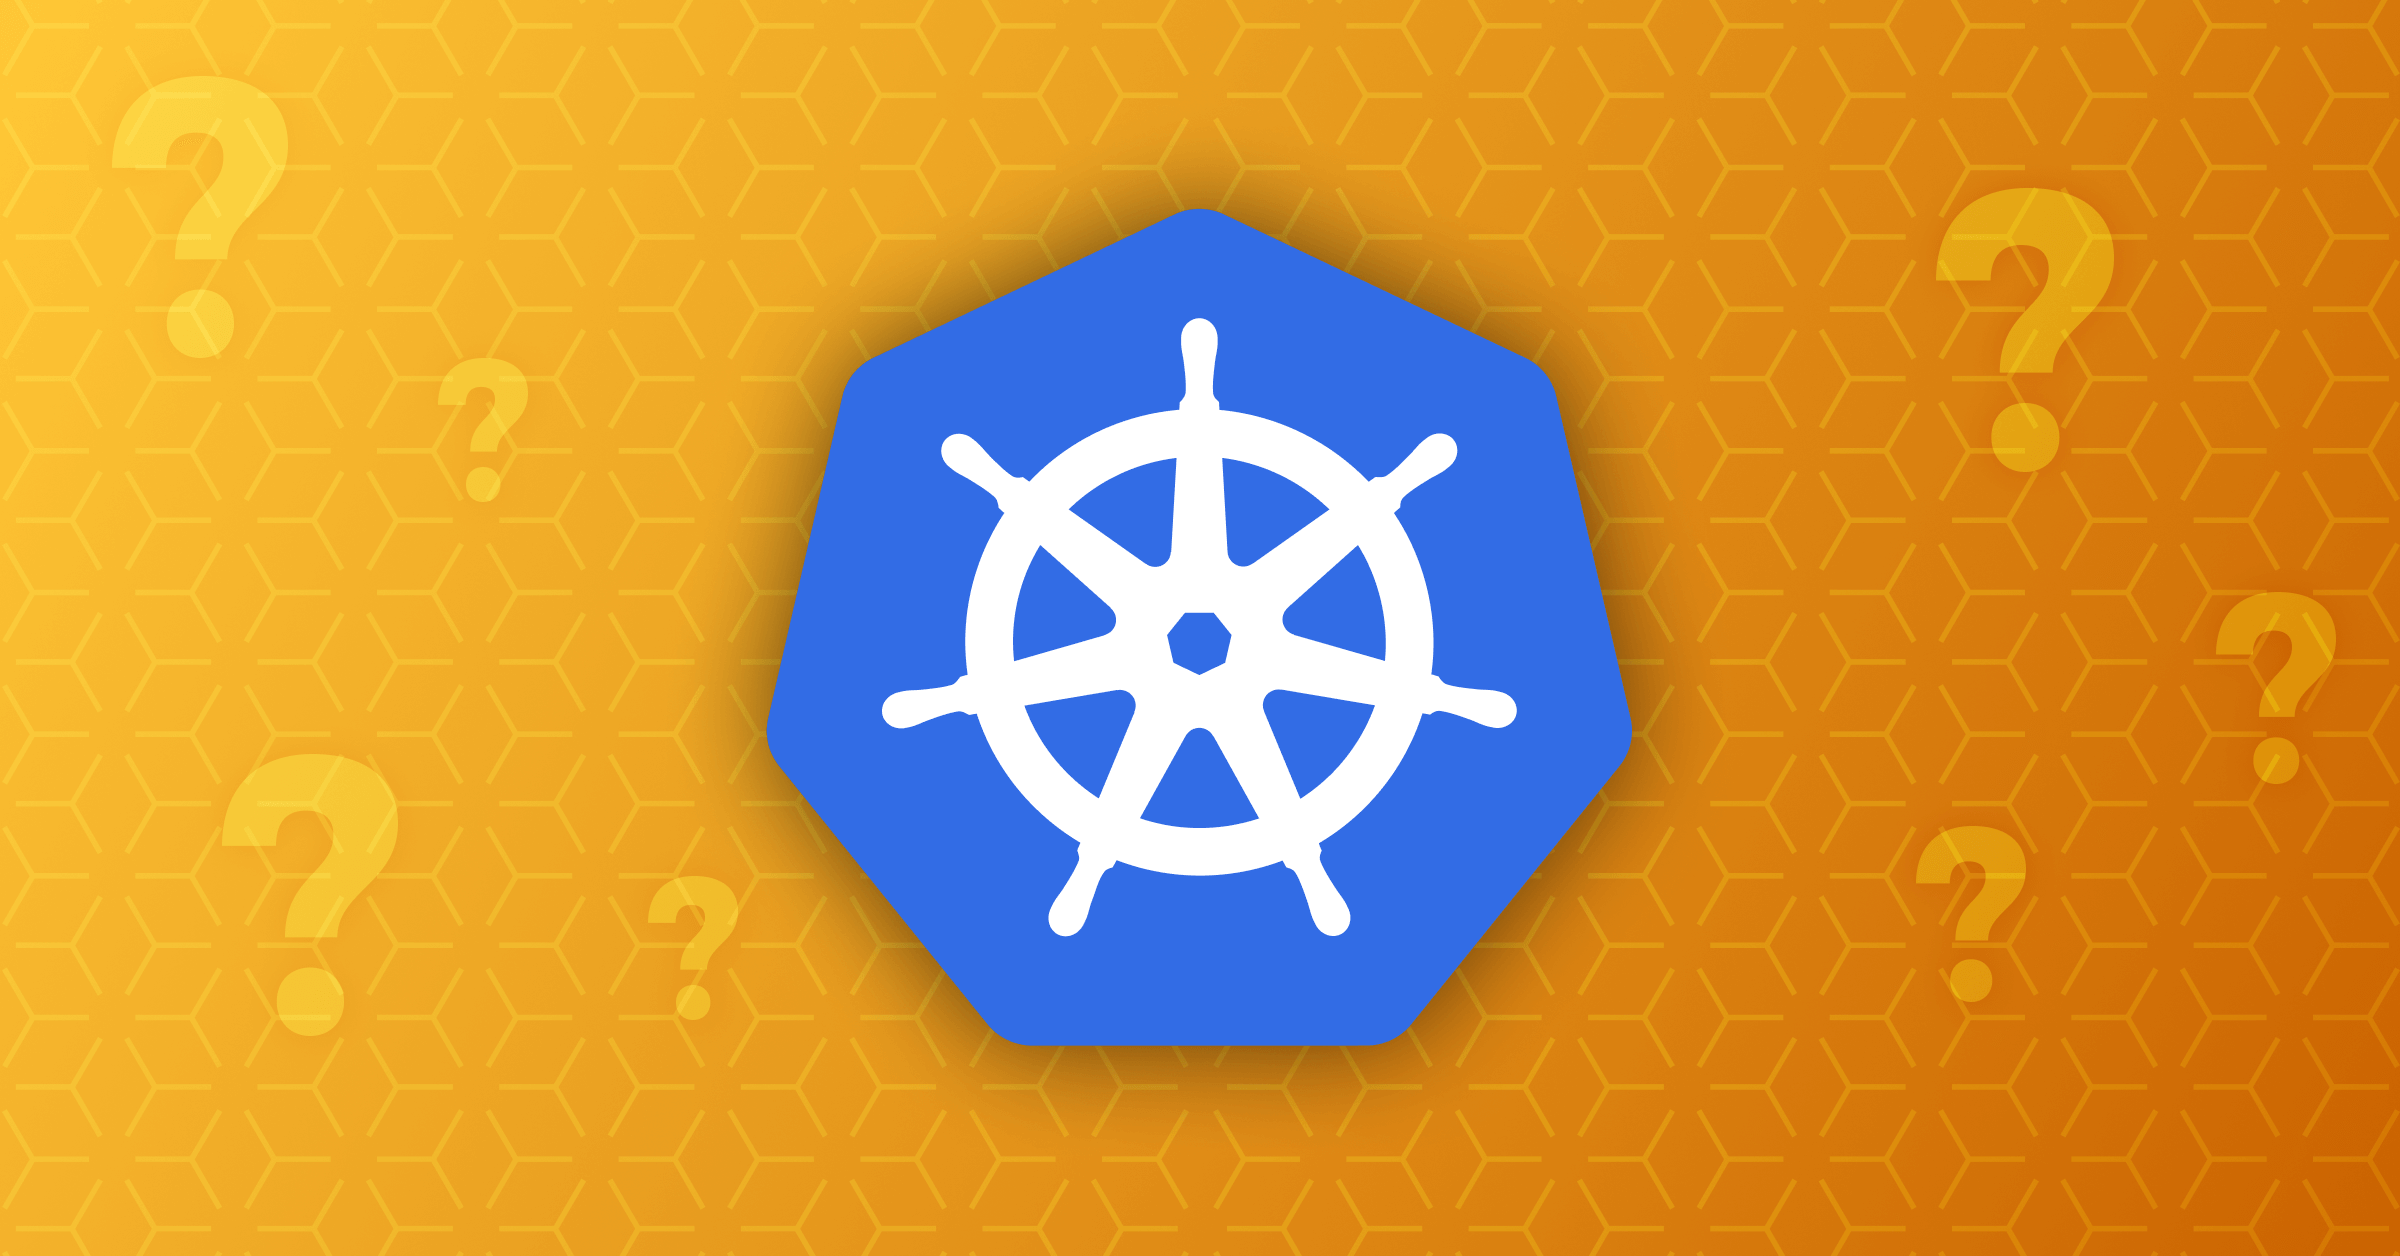 What are the hardest parts of Kubernetes to learn?